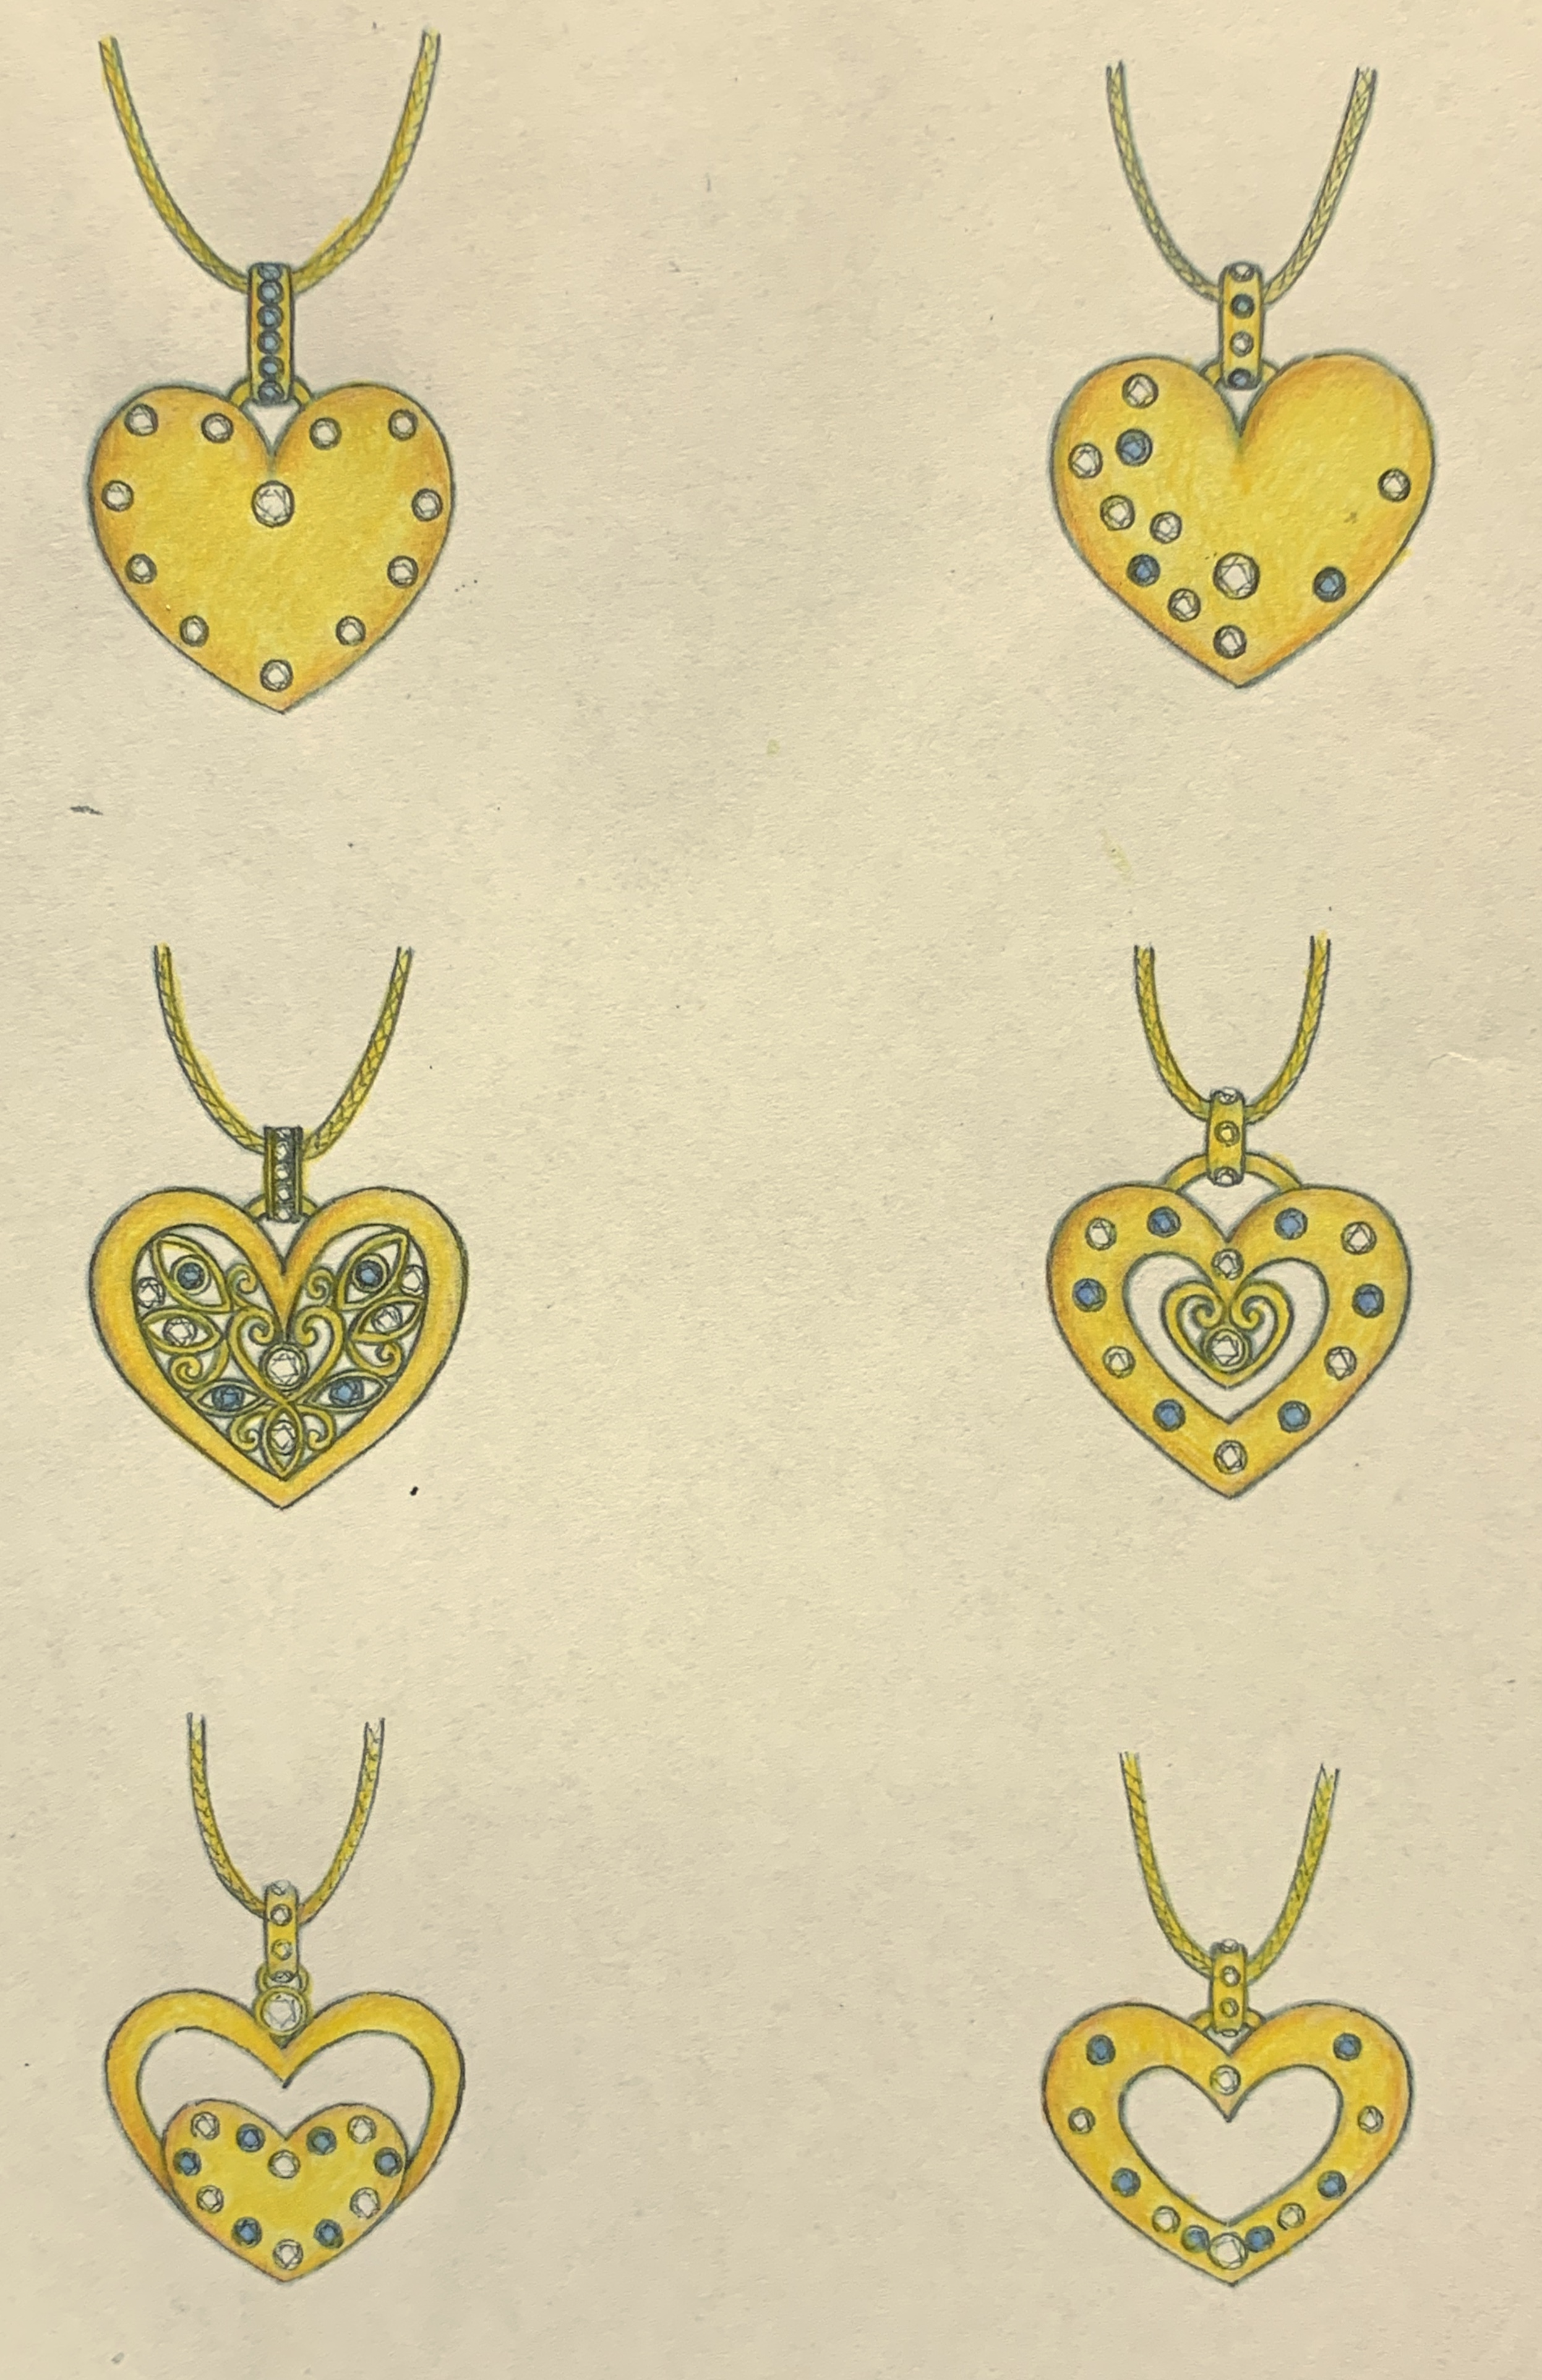 Designs for a heart pendant using customers own diamonds and sapphires.